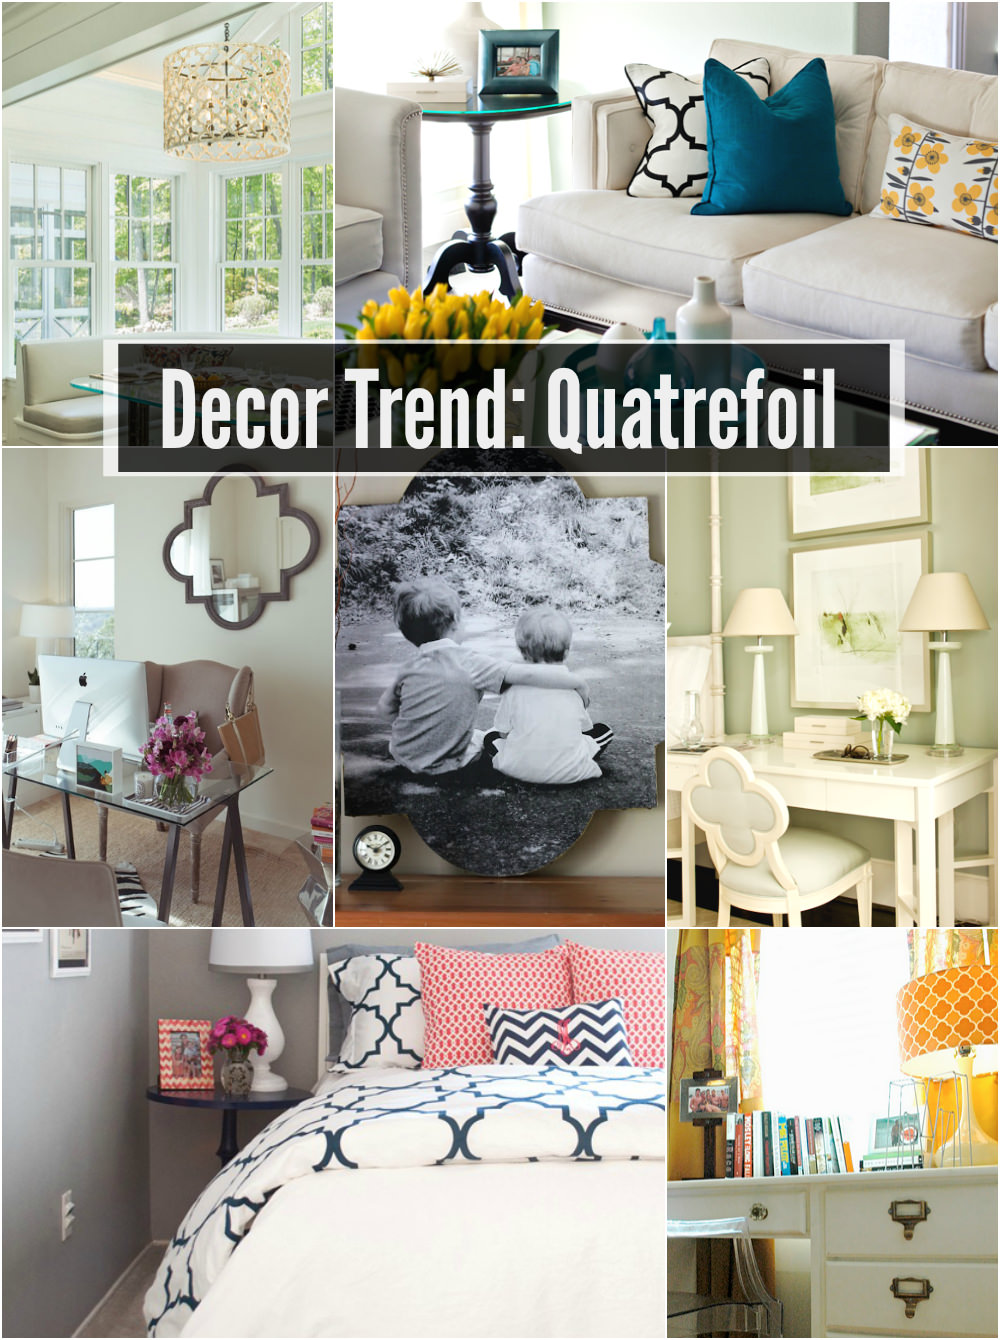 quatrefoil design in home decor